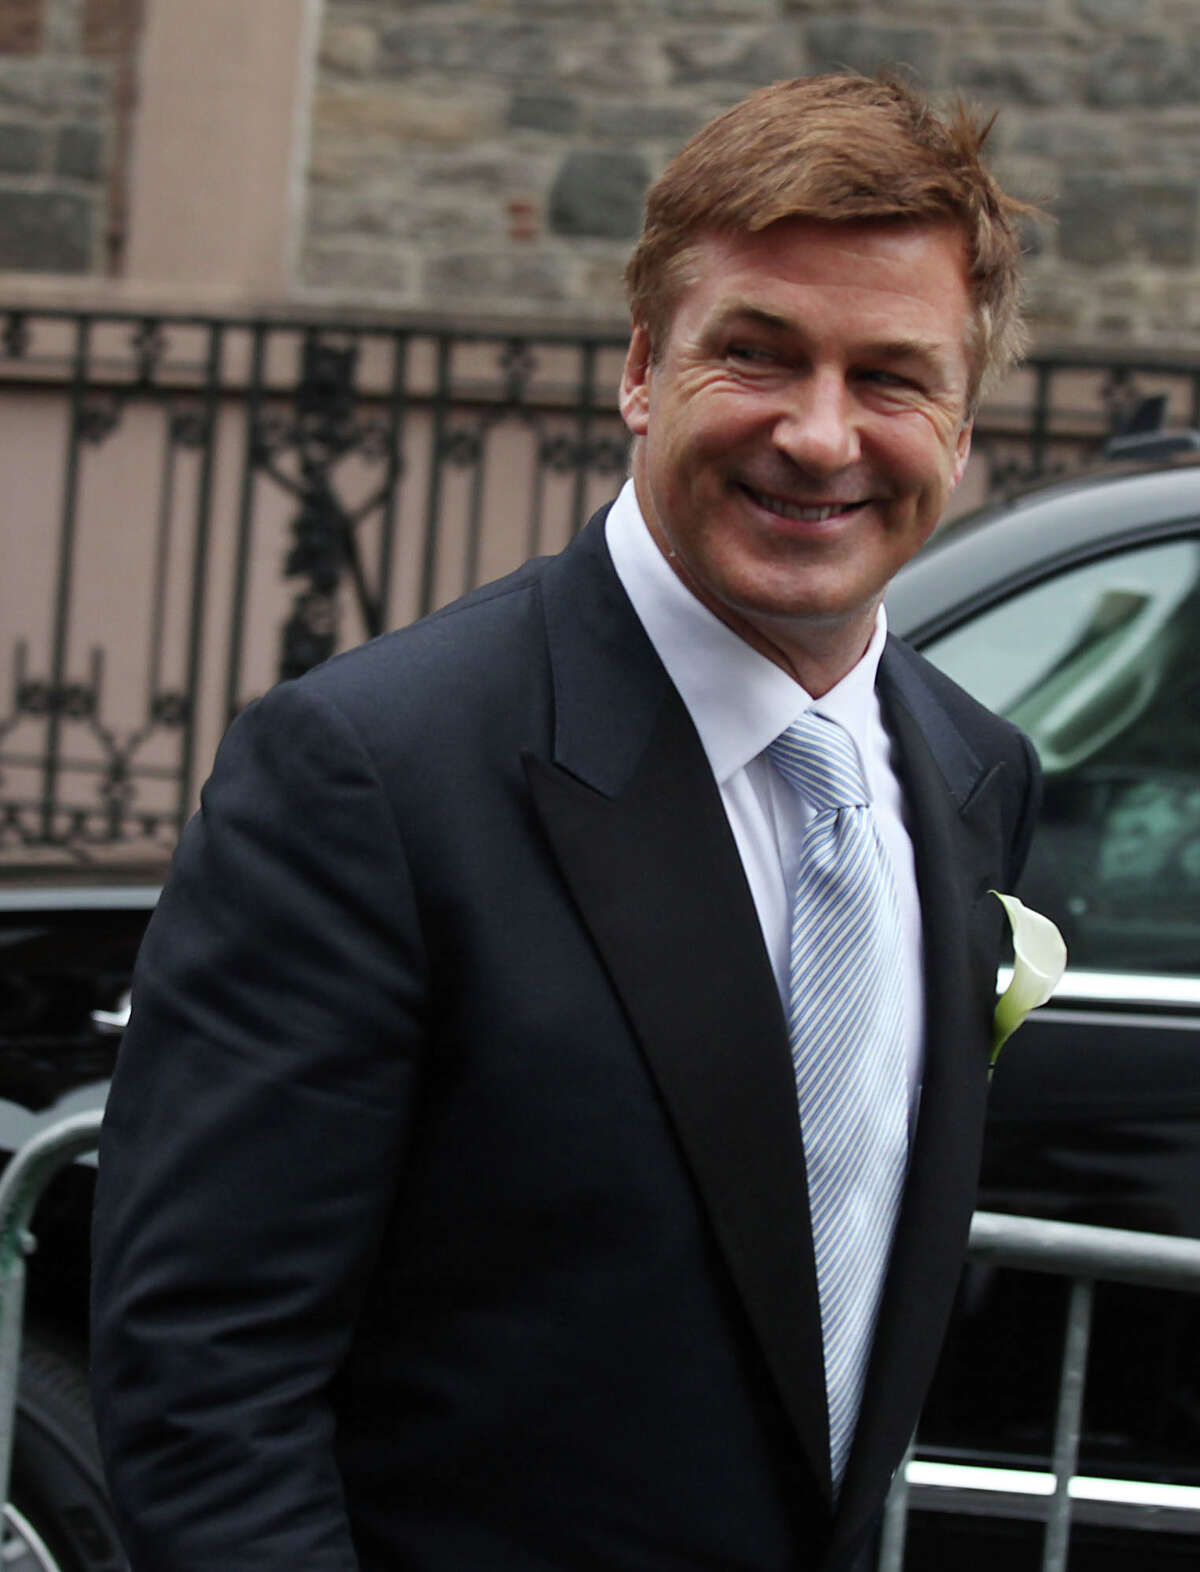 Alec Baldwin at his wedding on June, 30 2012 in New York City. Baldwin, 54, married Hilaria Thomas, a 28-year-old yoga instructor.